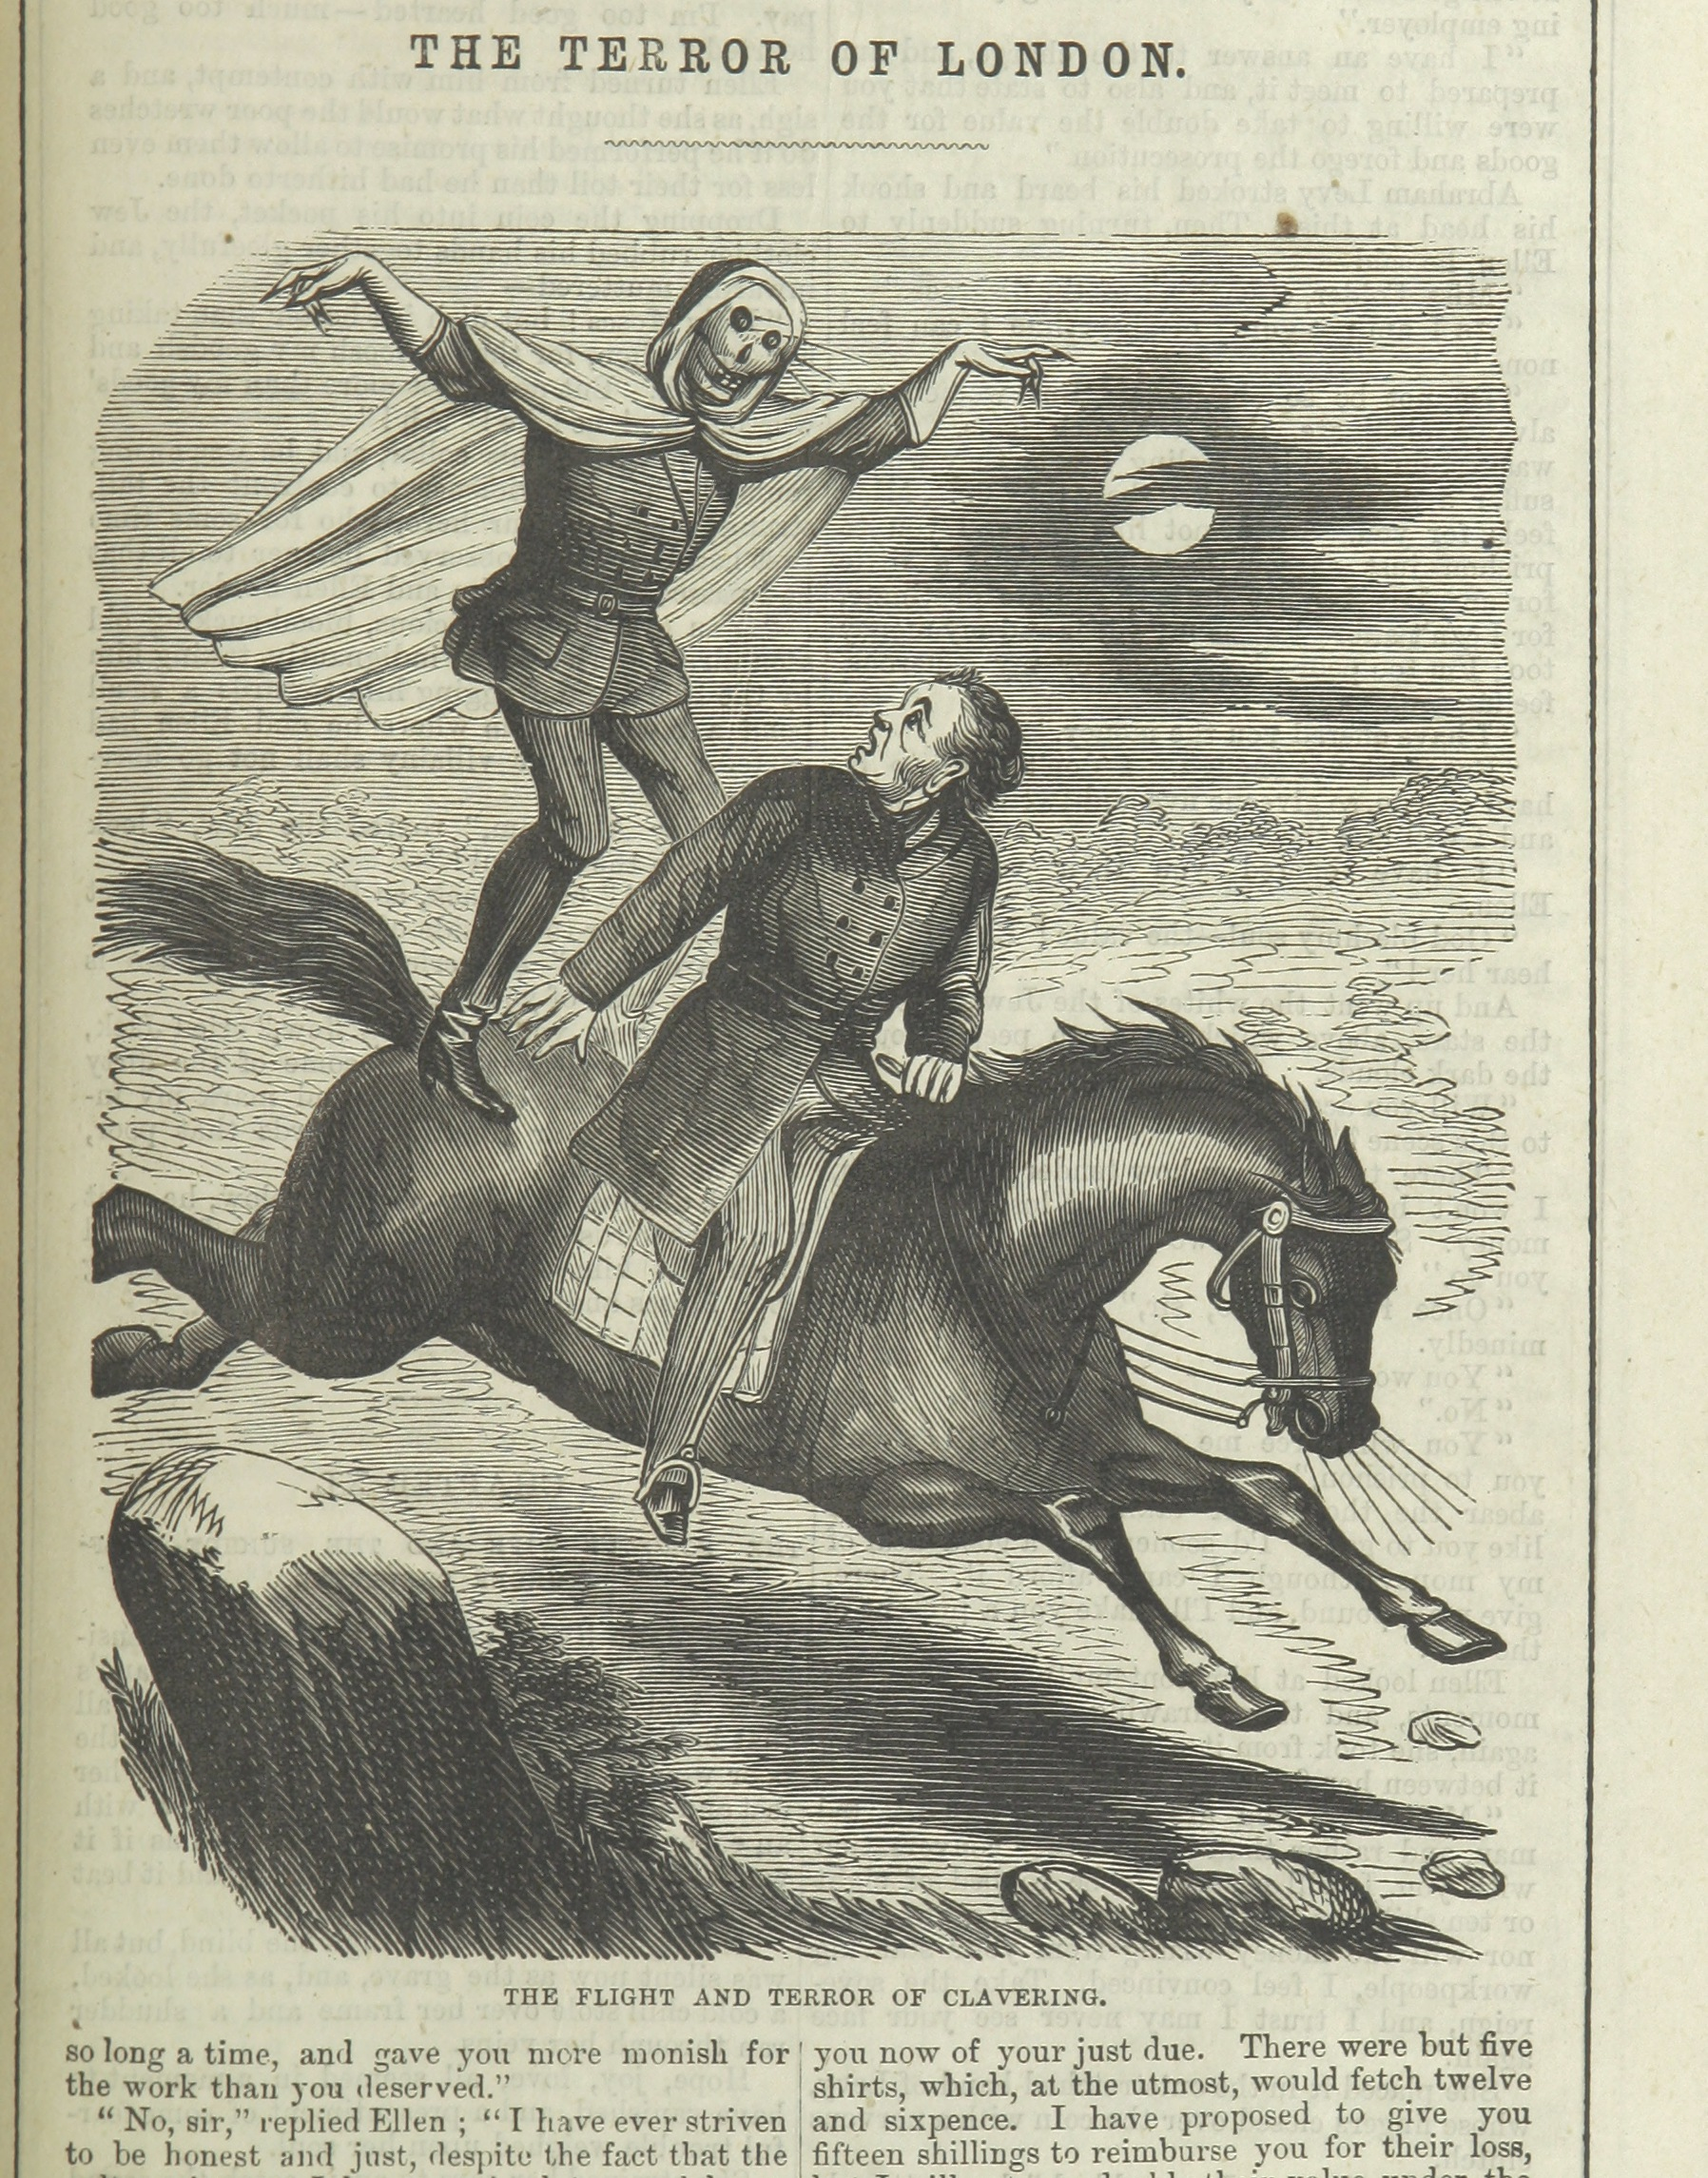 An image of Spring-heeled Jack, taken from a penny dreadful.